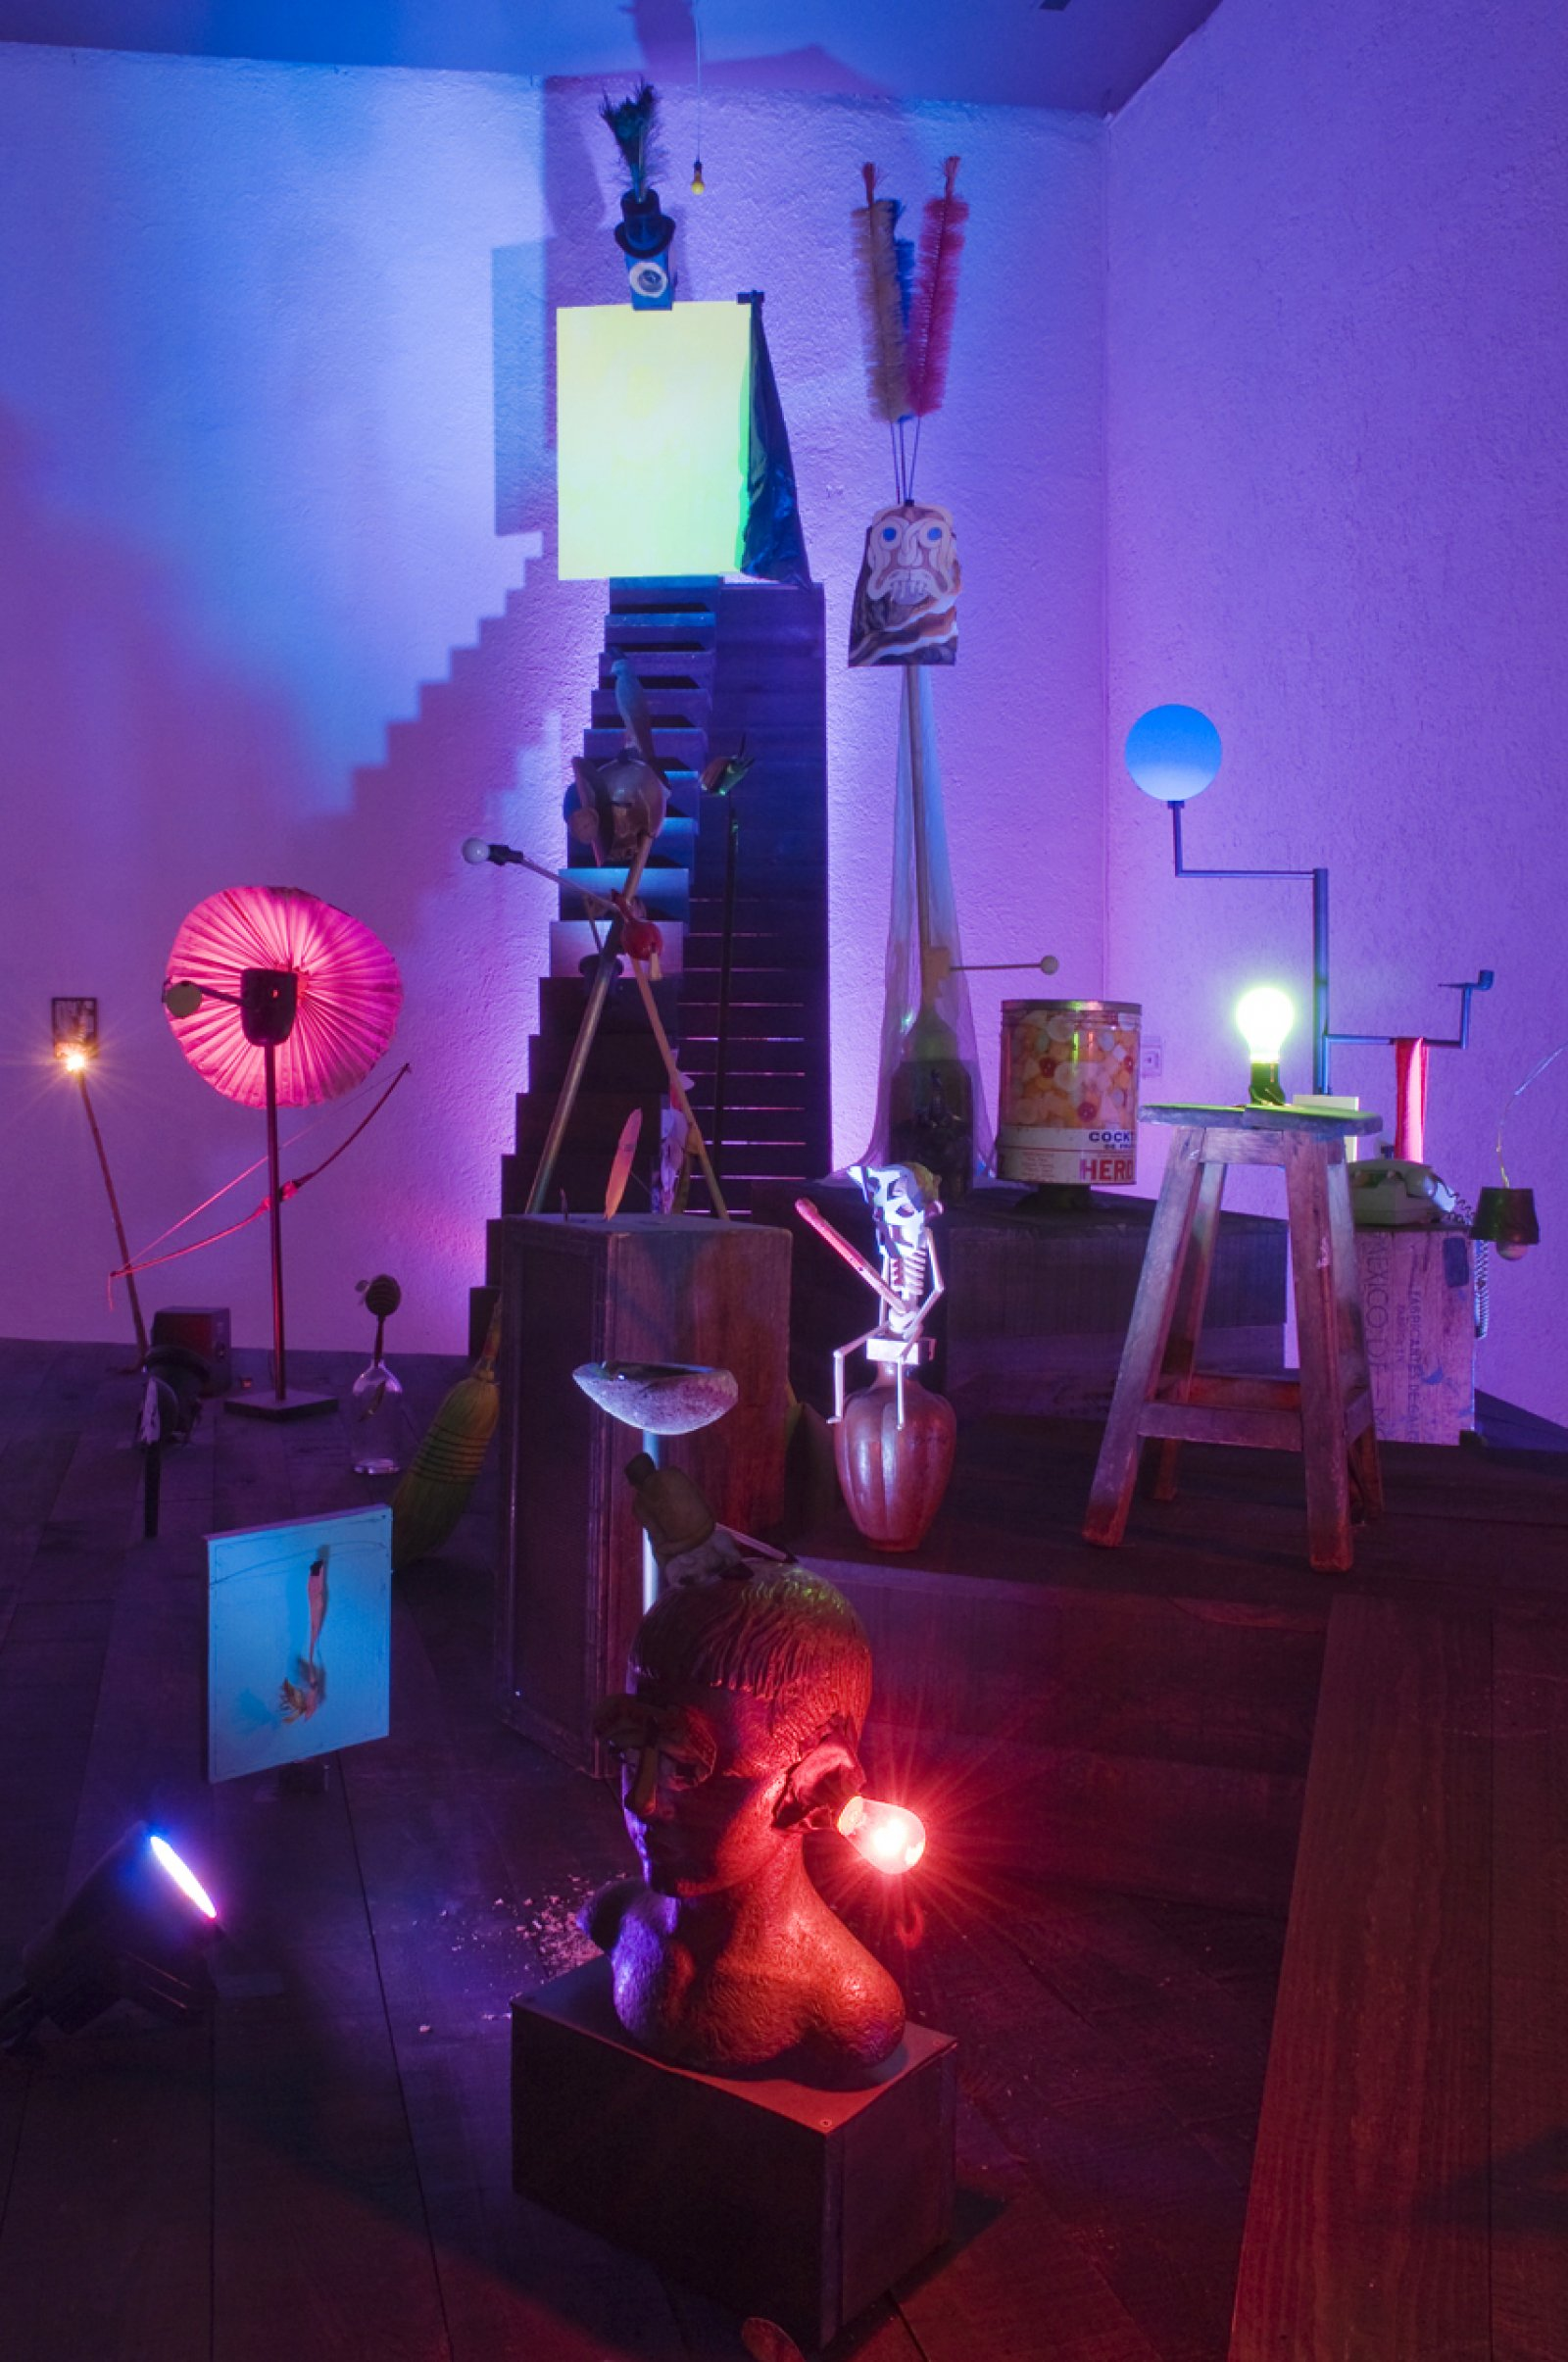 Geoffrey Farmer,The Vampire of Coyoacan, 2010, sculptural objects, sound and light installation on raised platform, various mixed media, mac mini, entec dmx box, fire box sound interface, servo motors, LED lights, speakers for 6 channels of sound, amplifier, dimensions variable. Installation view,The Vampire of Coyoacán and His Twenty Achichintles, El Eco, Mexico City, 2010